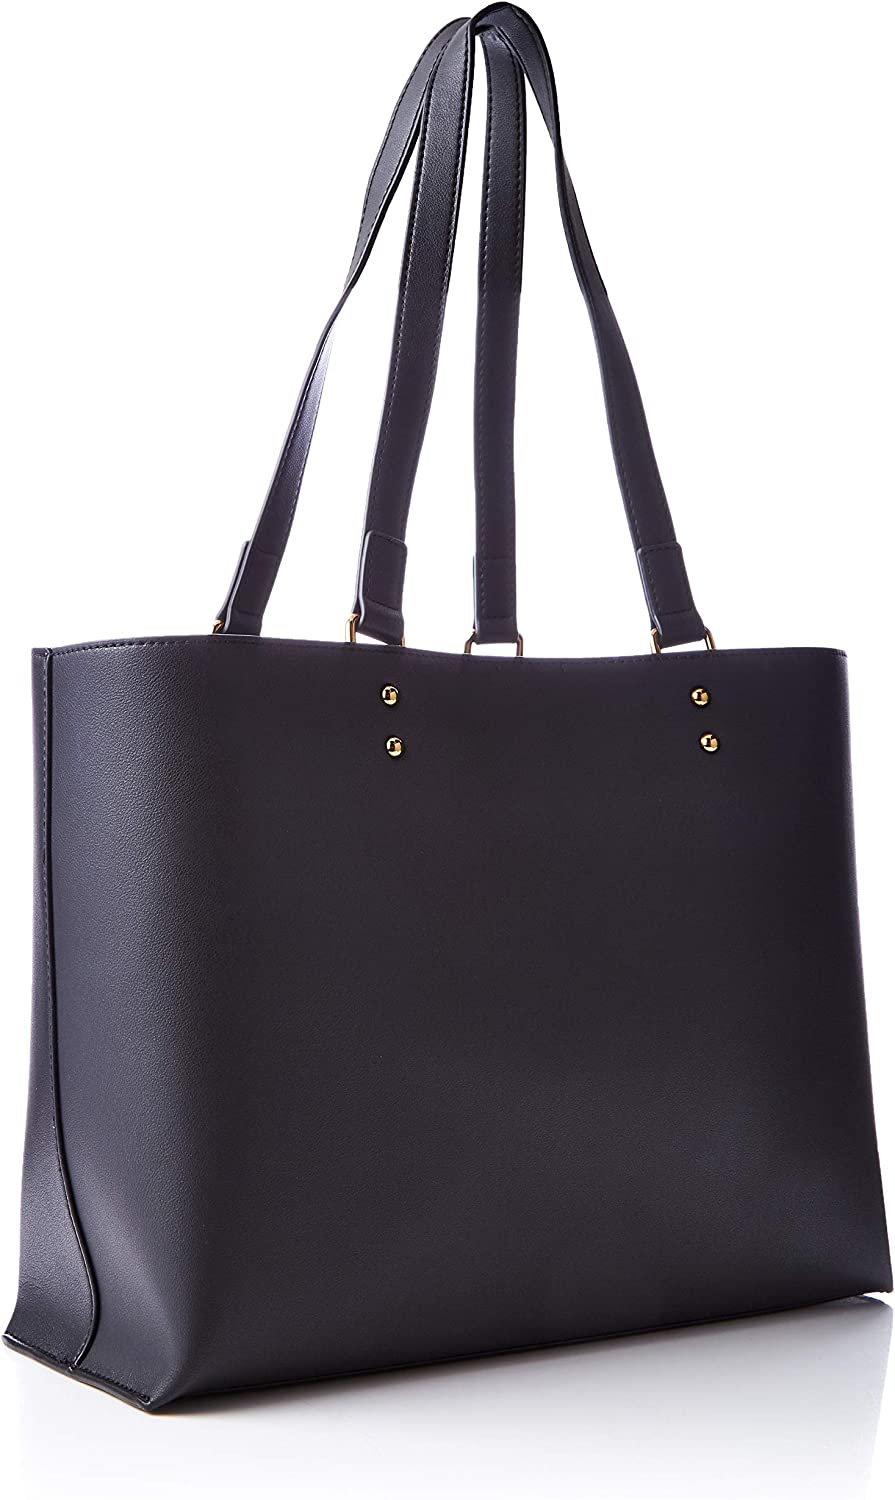 12x27x40 centimeters W x H x L Love Moschino Jc4024pp1a Bolso tipo tote para Mujer